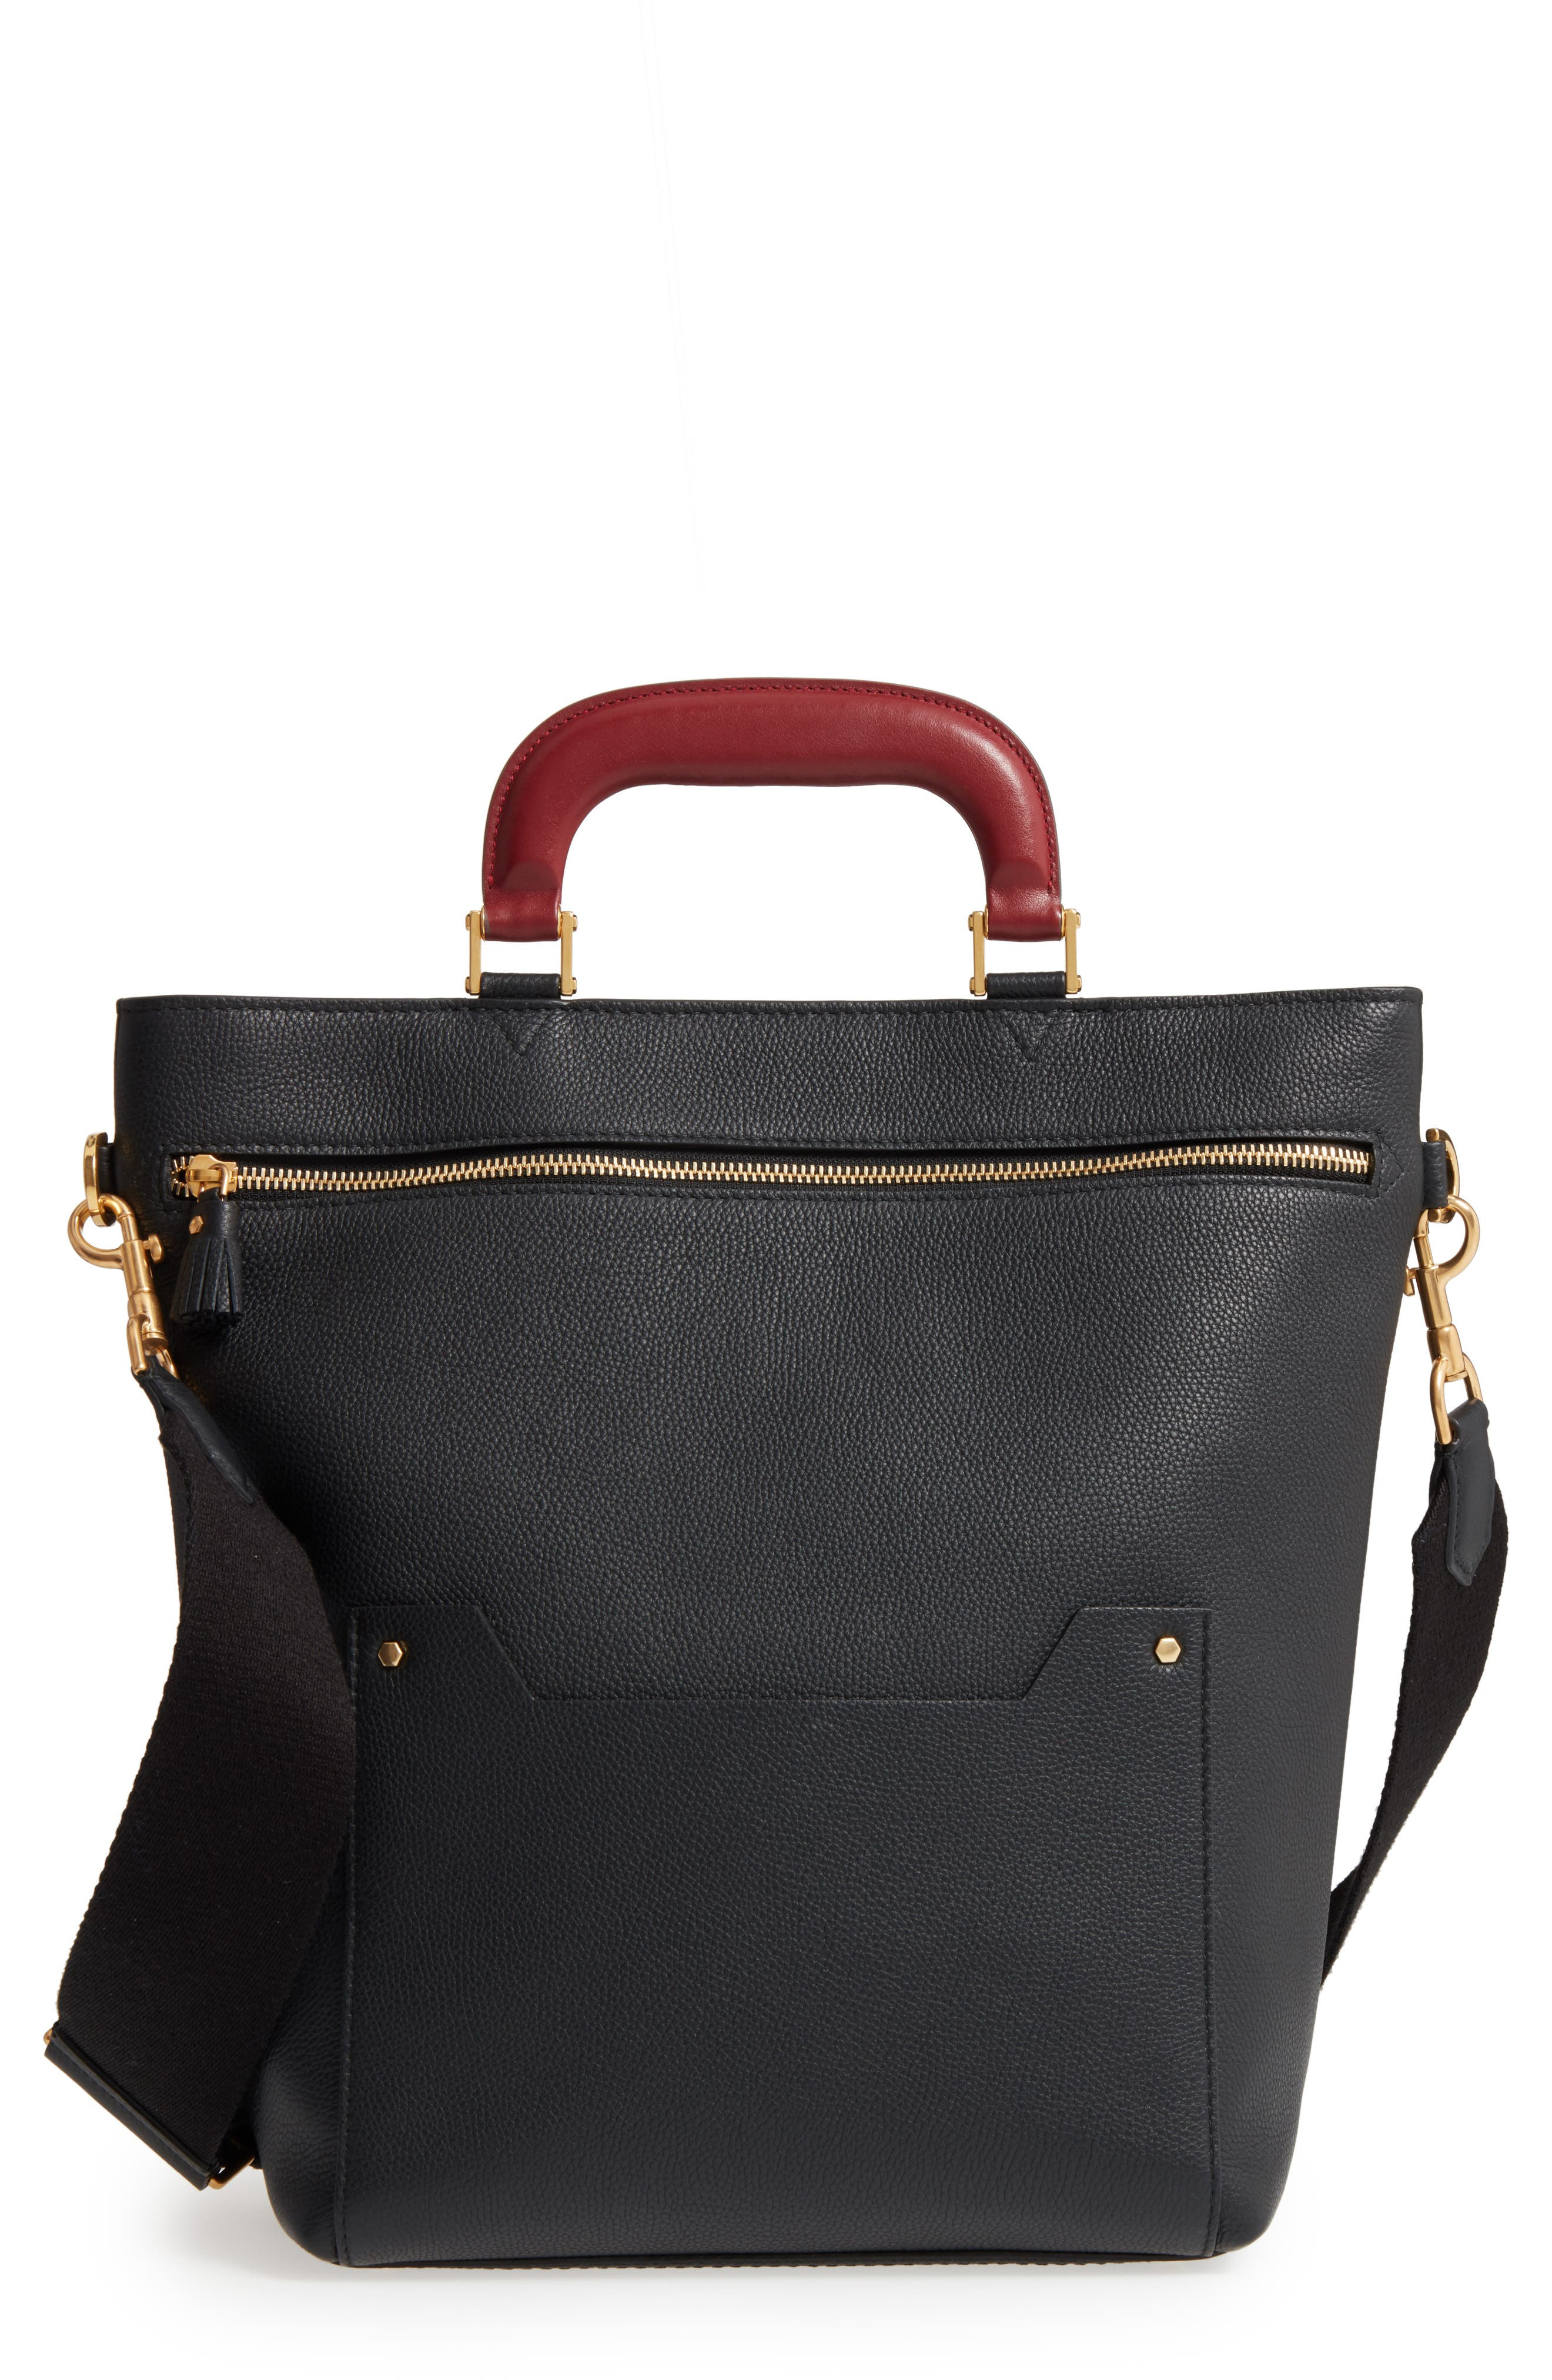 Anya Hindmarch Small Orsett Leather Shoulder Bag